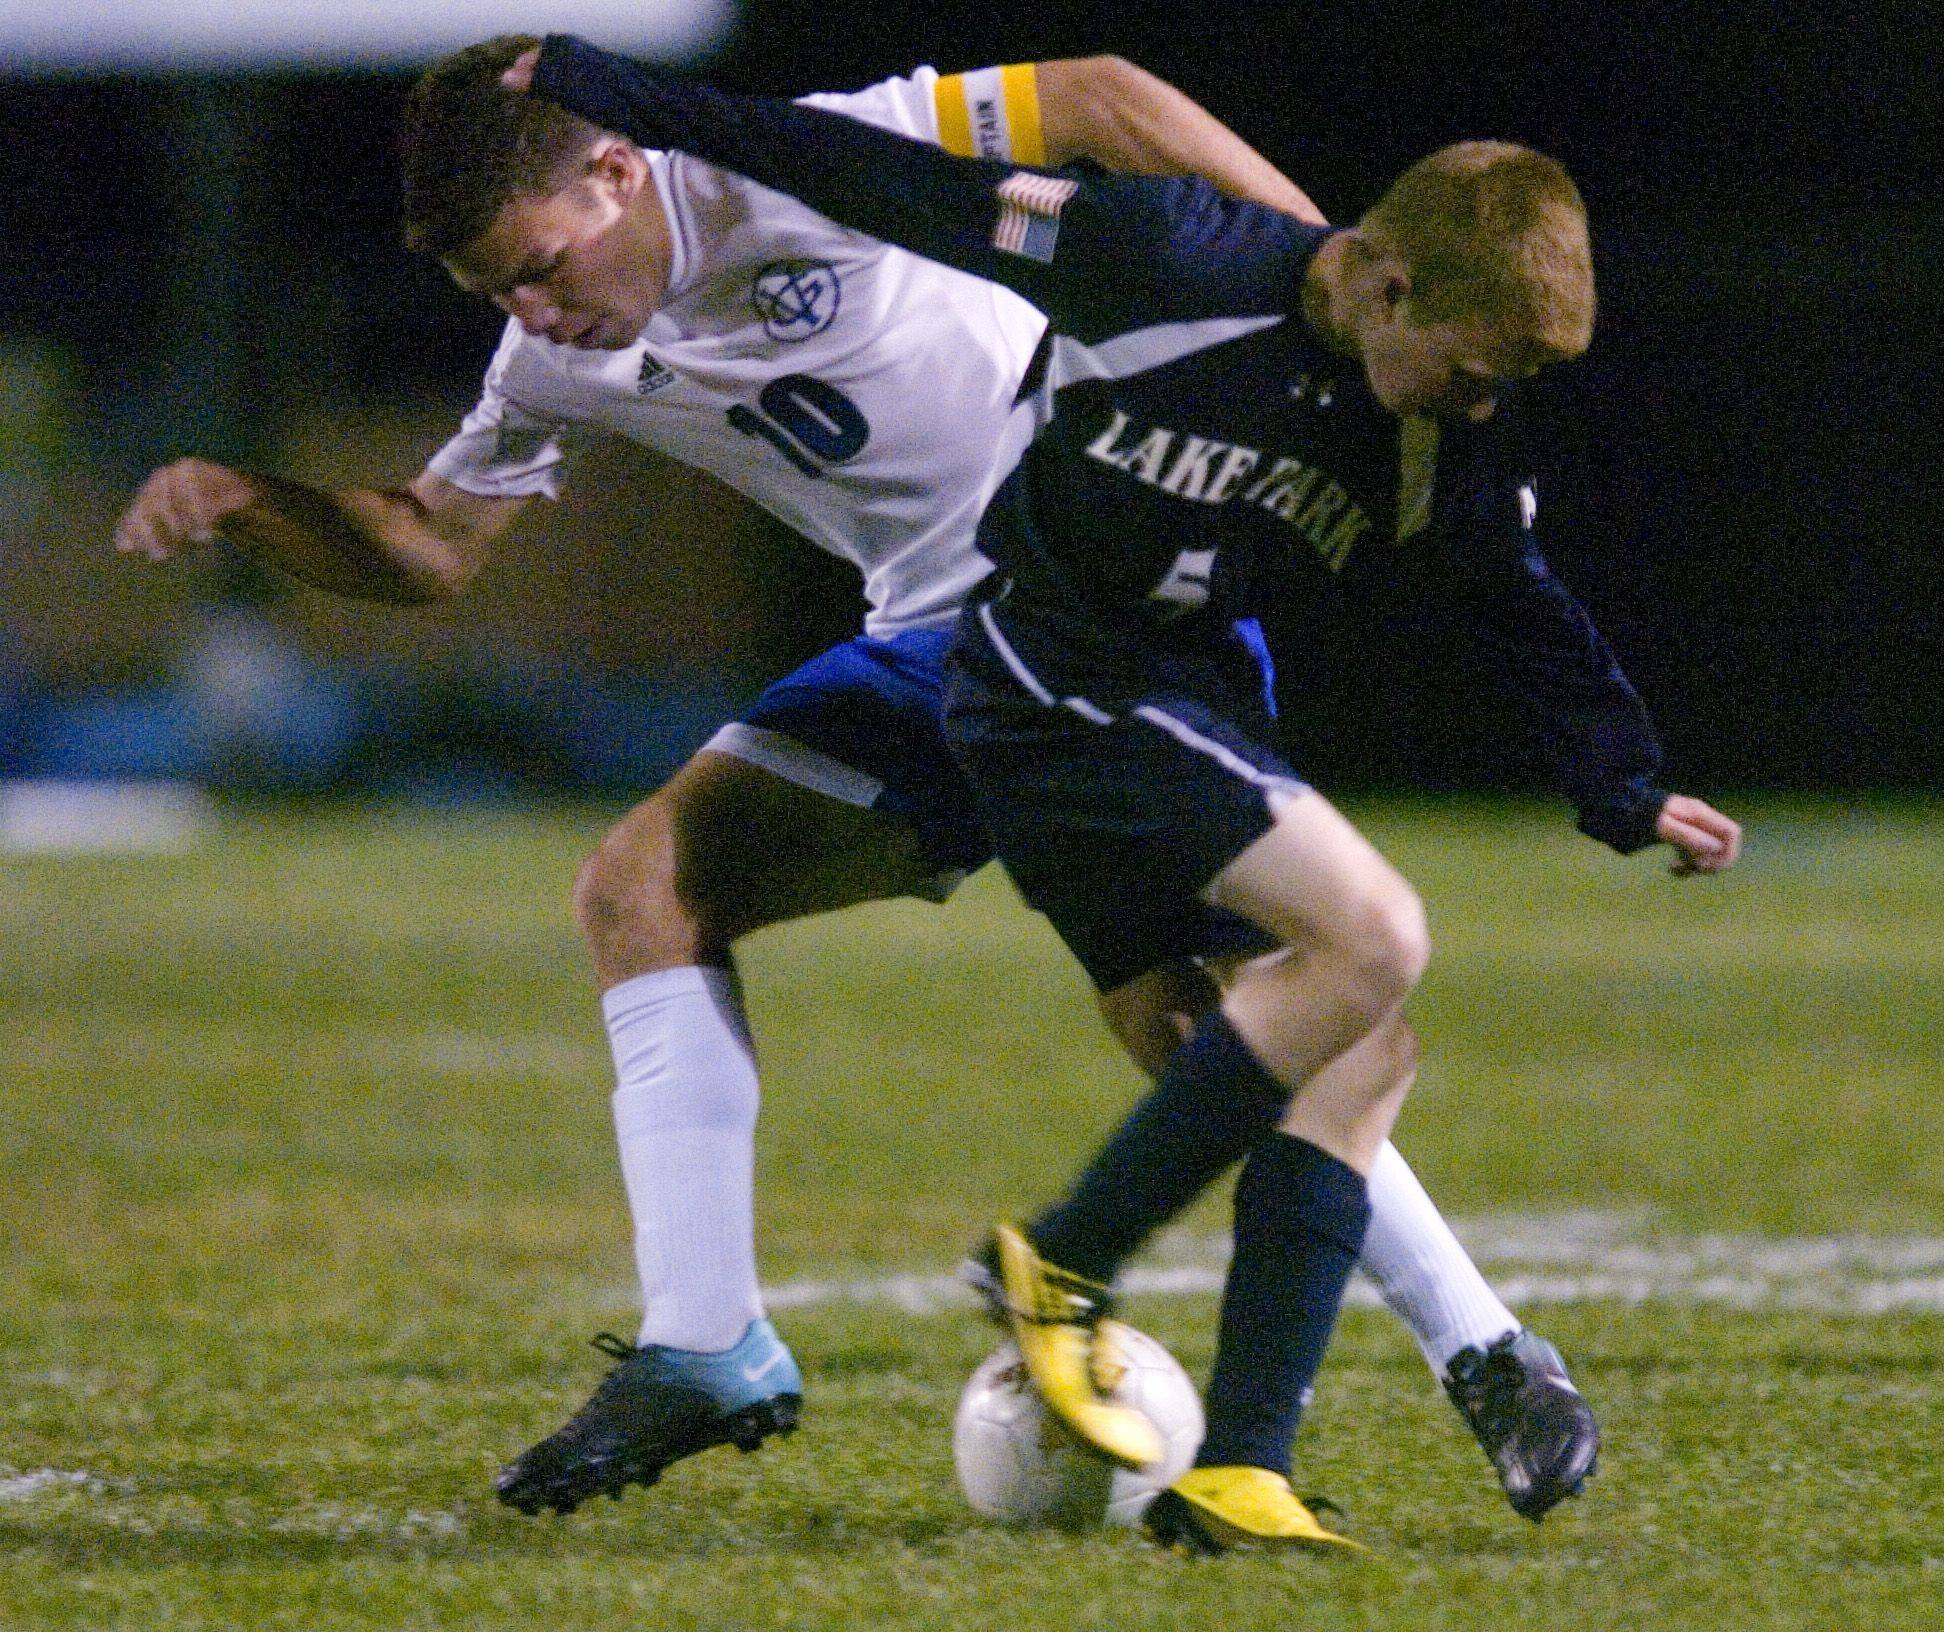 Cameron Siegle of Lake Park and Brady Wahl of Geneva rush for the ball during Thursday?s soccer match in Geneva.